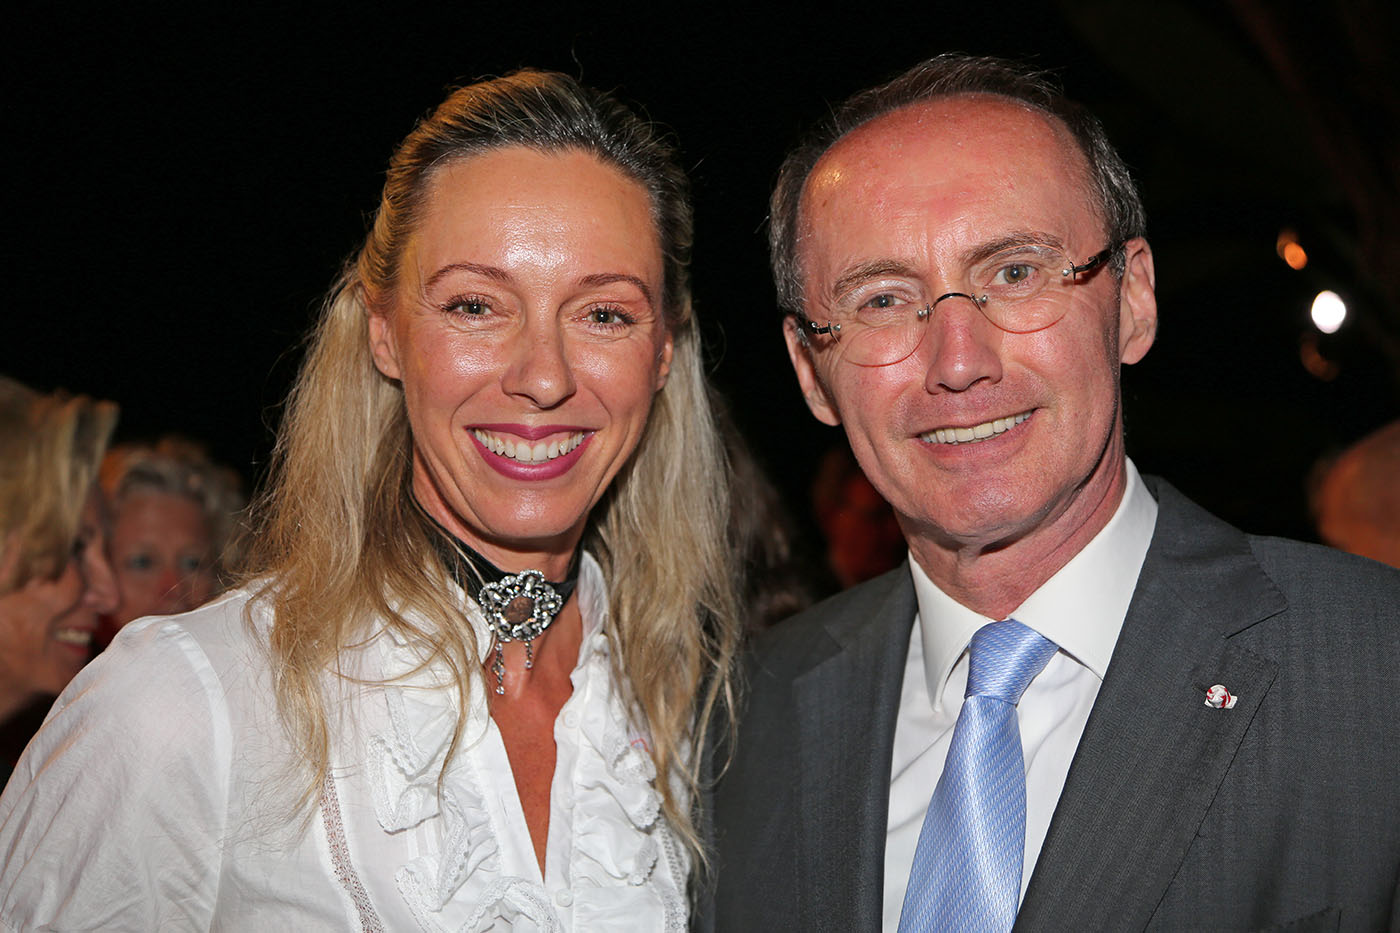 Ritziger with MEP Othmar Karas at the Special Olympics in LA, photo: Ulrike Ritzinger private archive